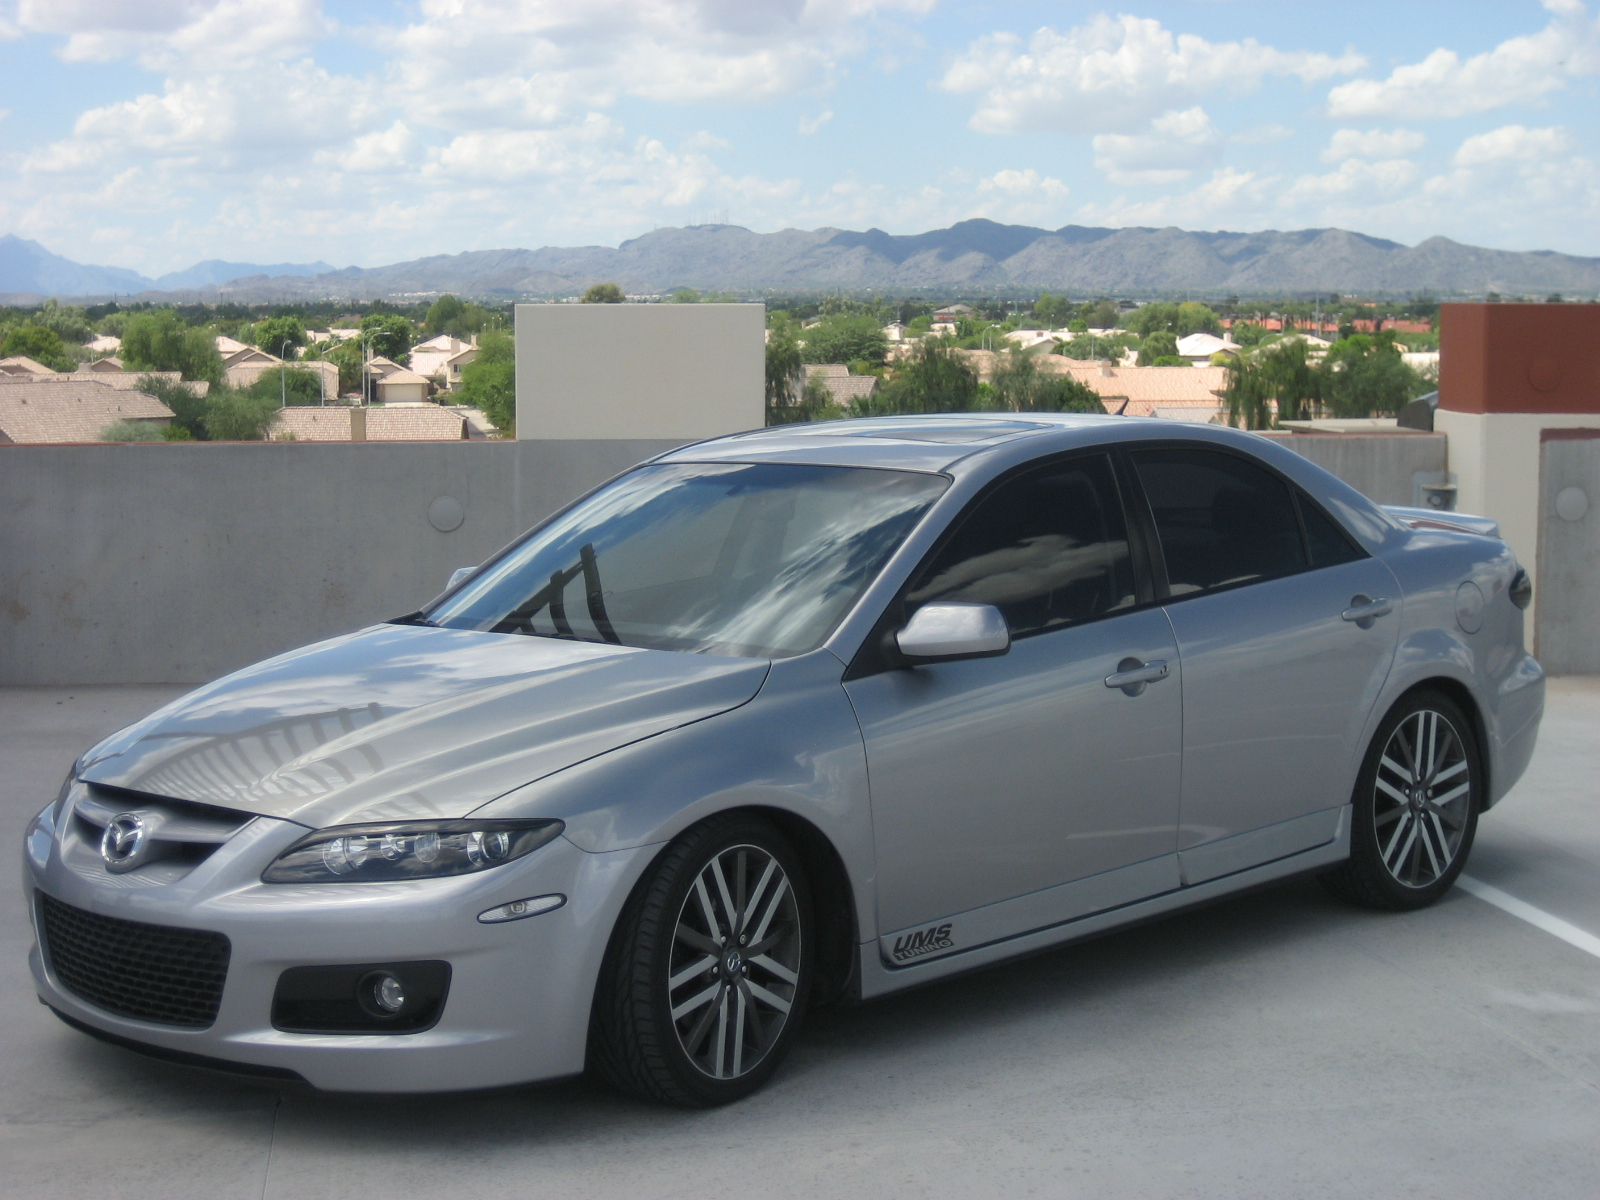 2006 mazda mazdaspeed6 overview cargurus. Black Bedroom Furniture Sets. Home Design Ideas